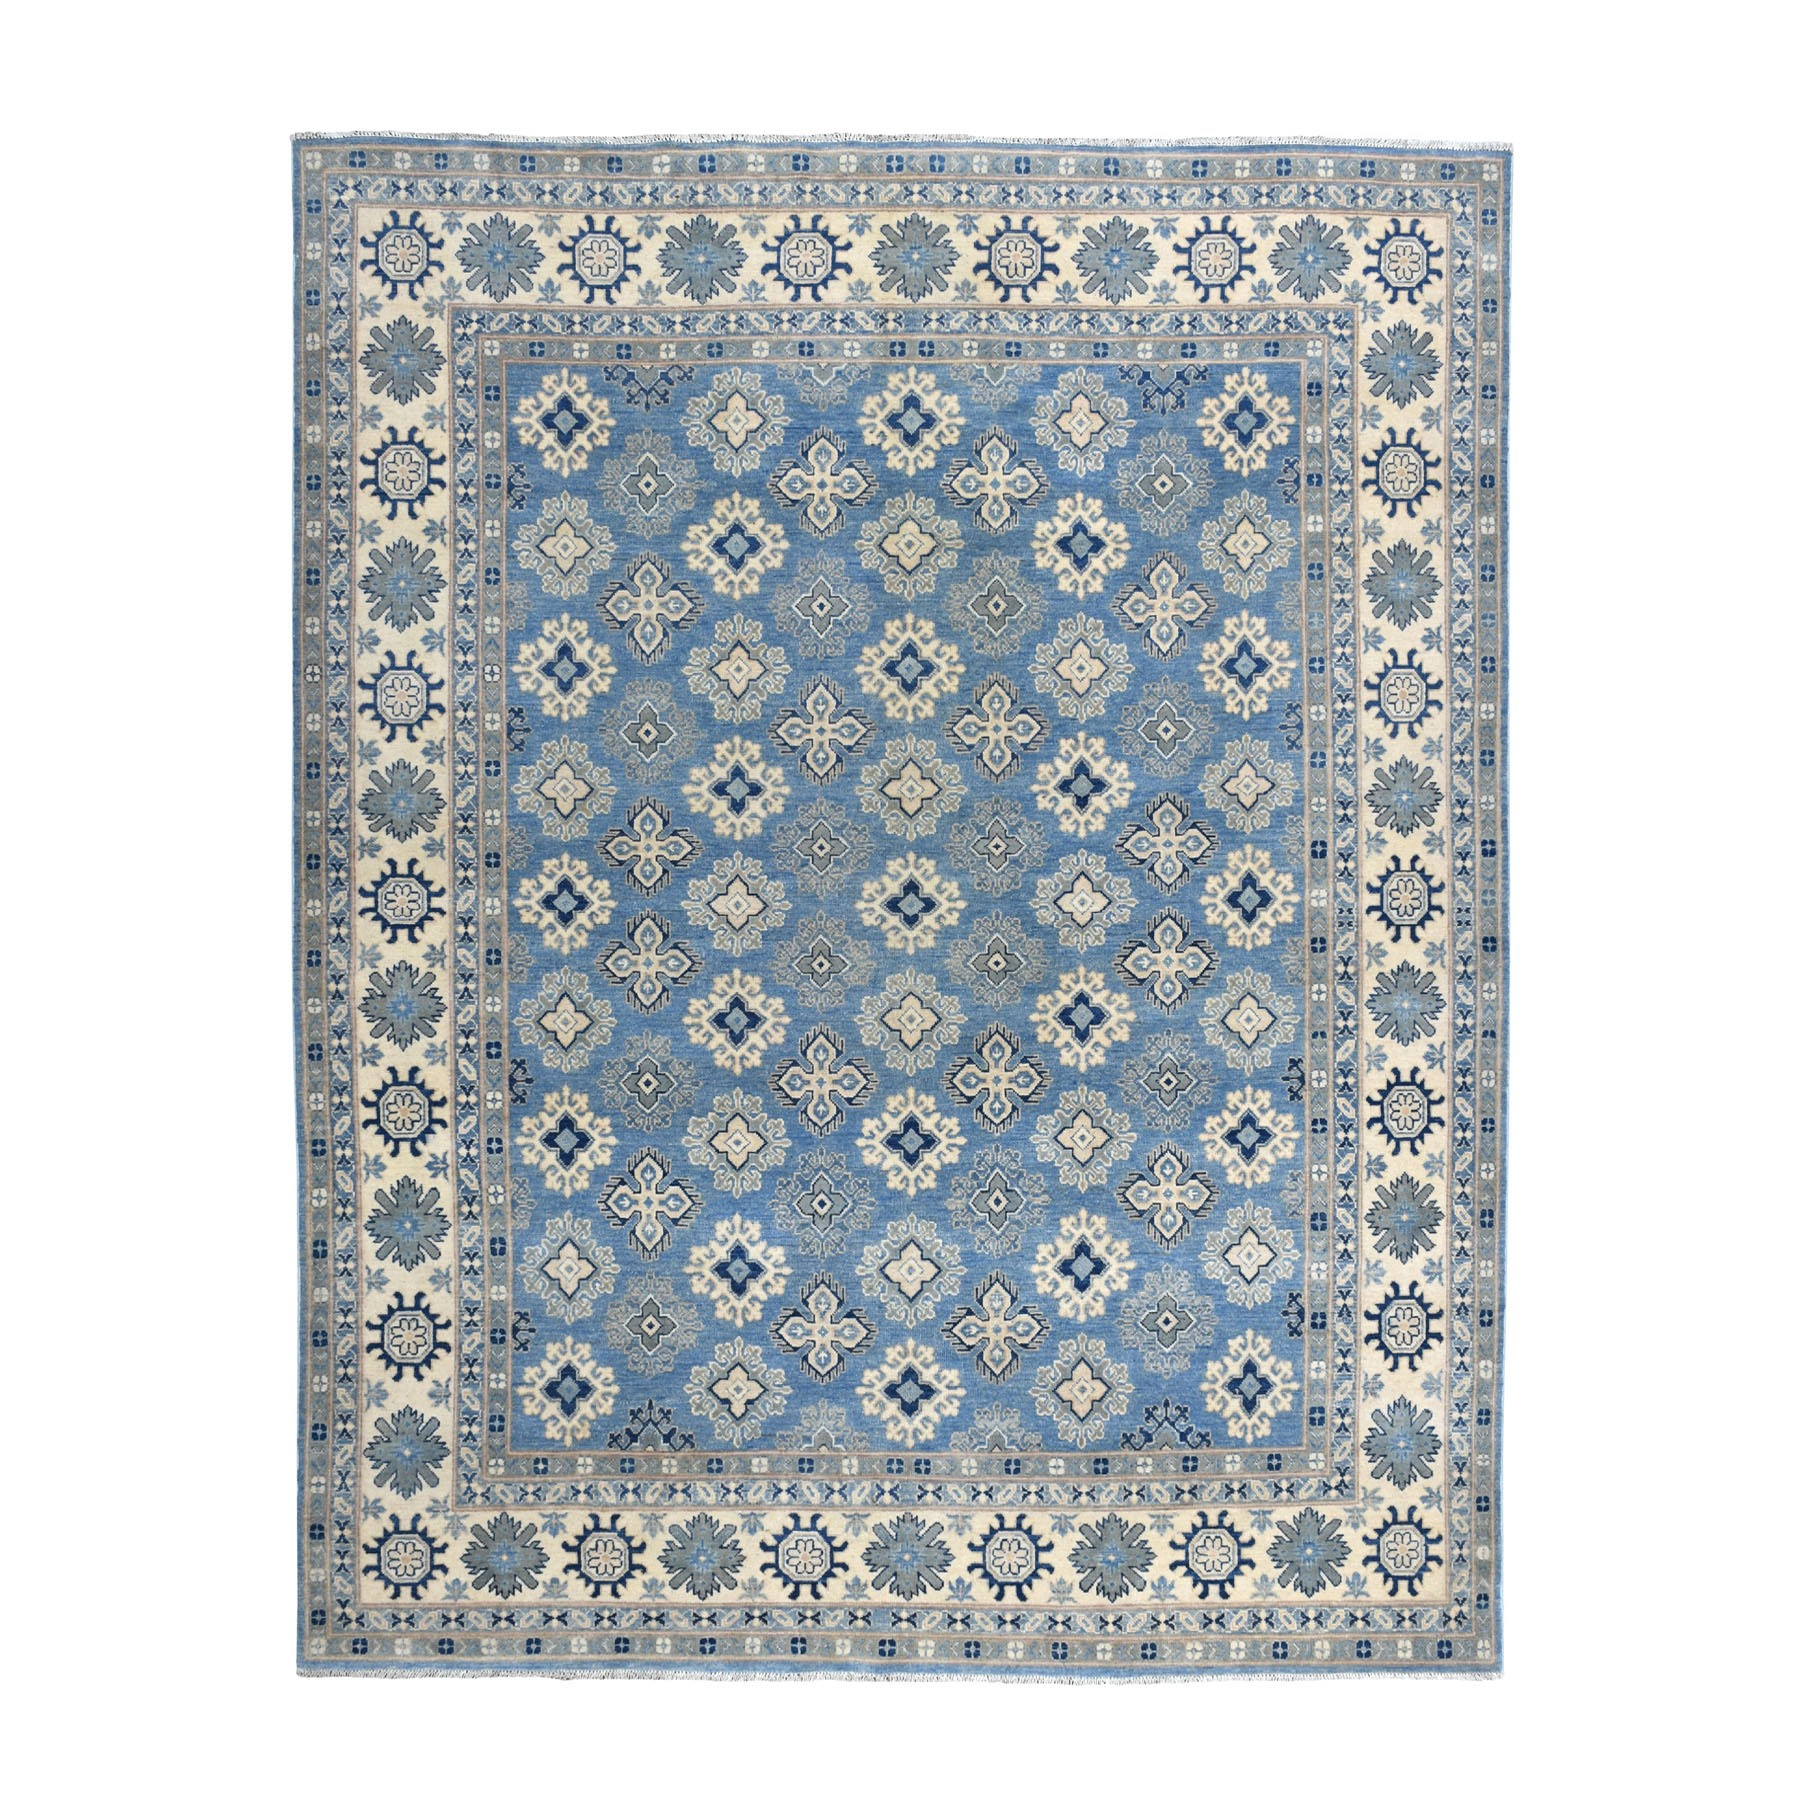 "7'10""x9'6"" Blue All Over Design Hand Knotted 100% Wool Vintage Look Kazak Oriental Rug"